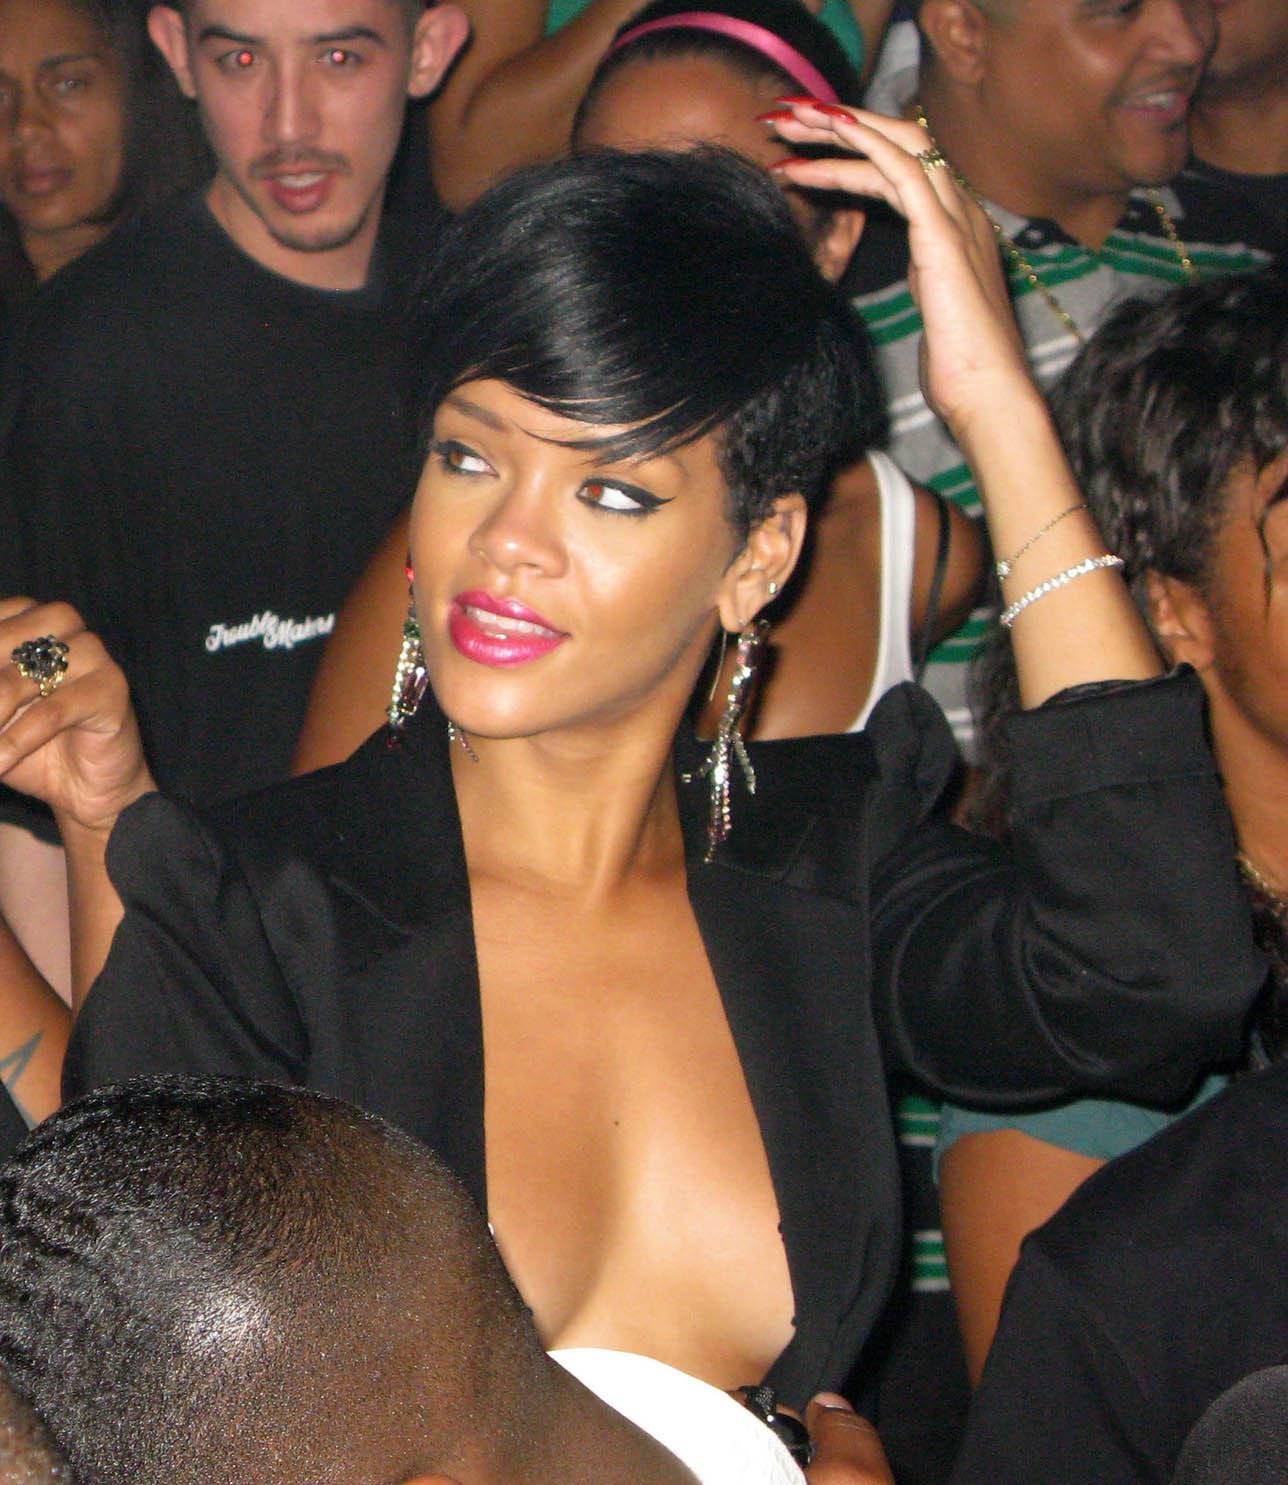 Rihanna showing her Tits 658d04d8